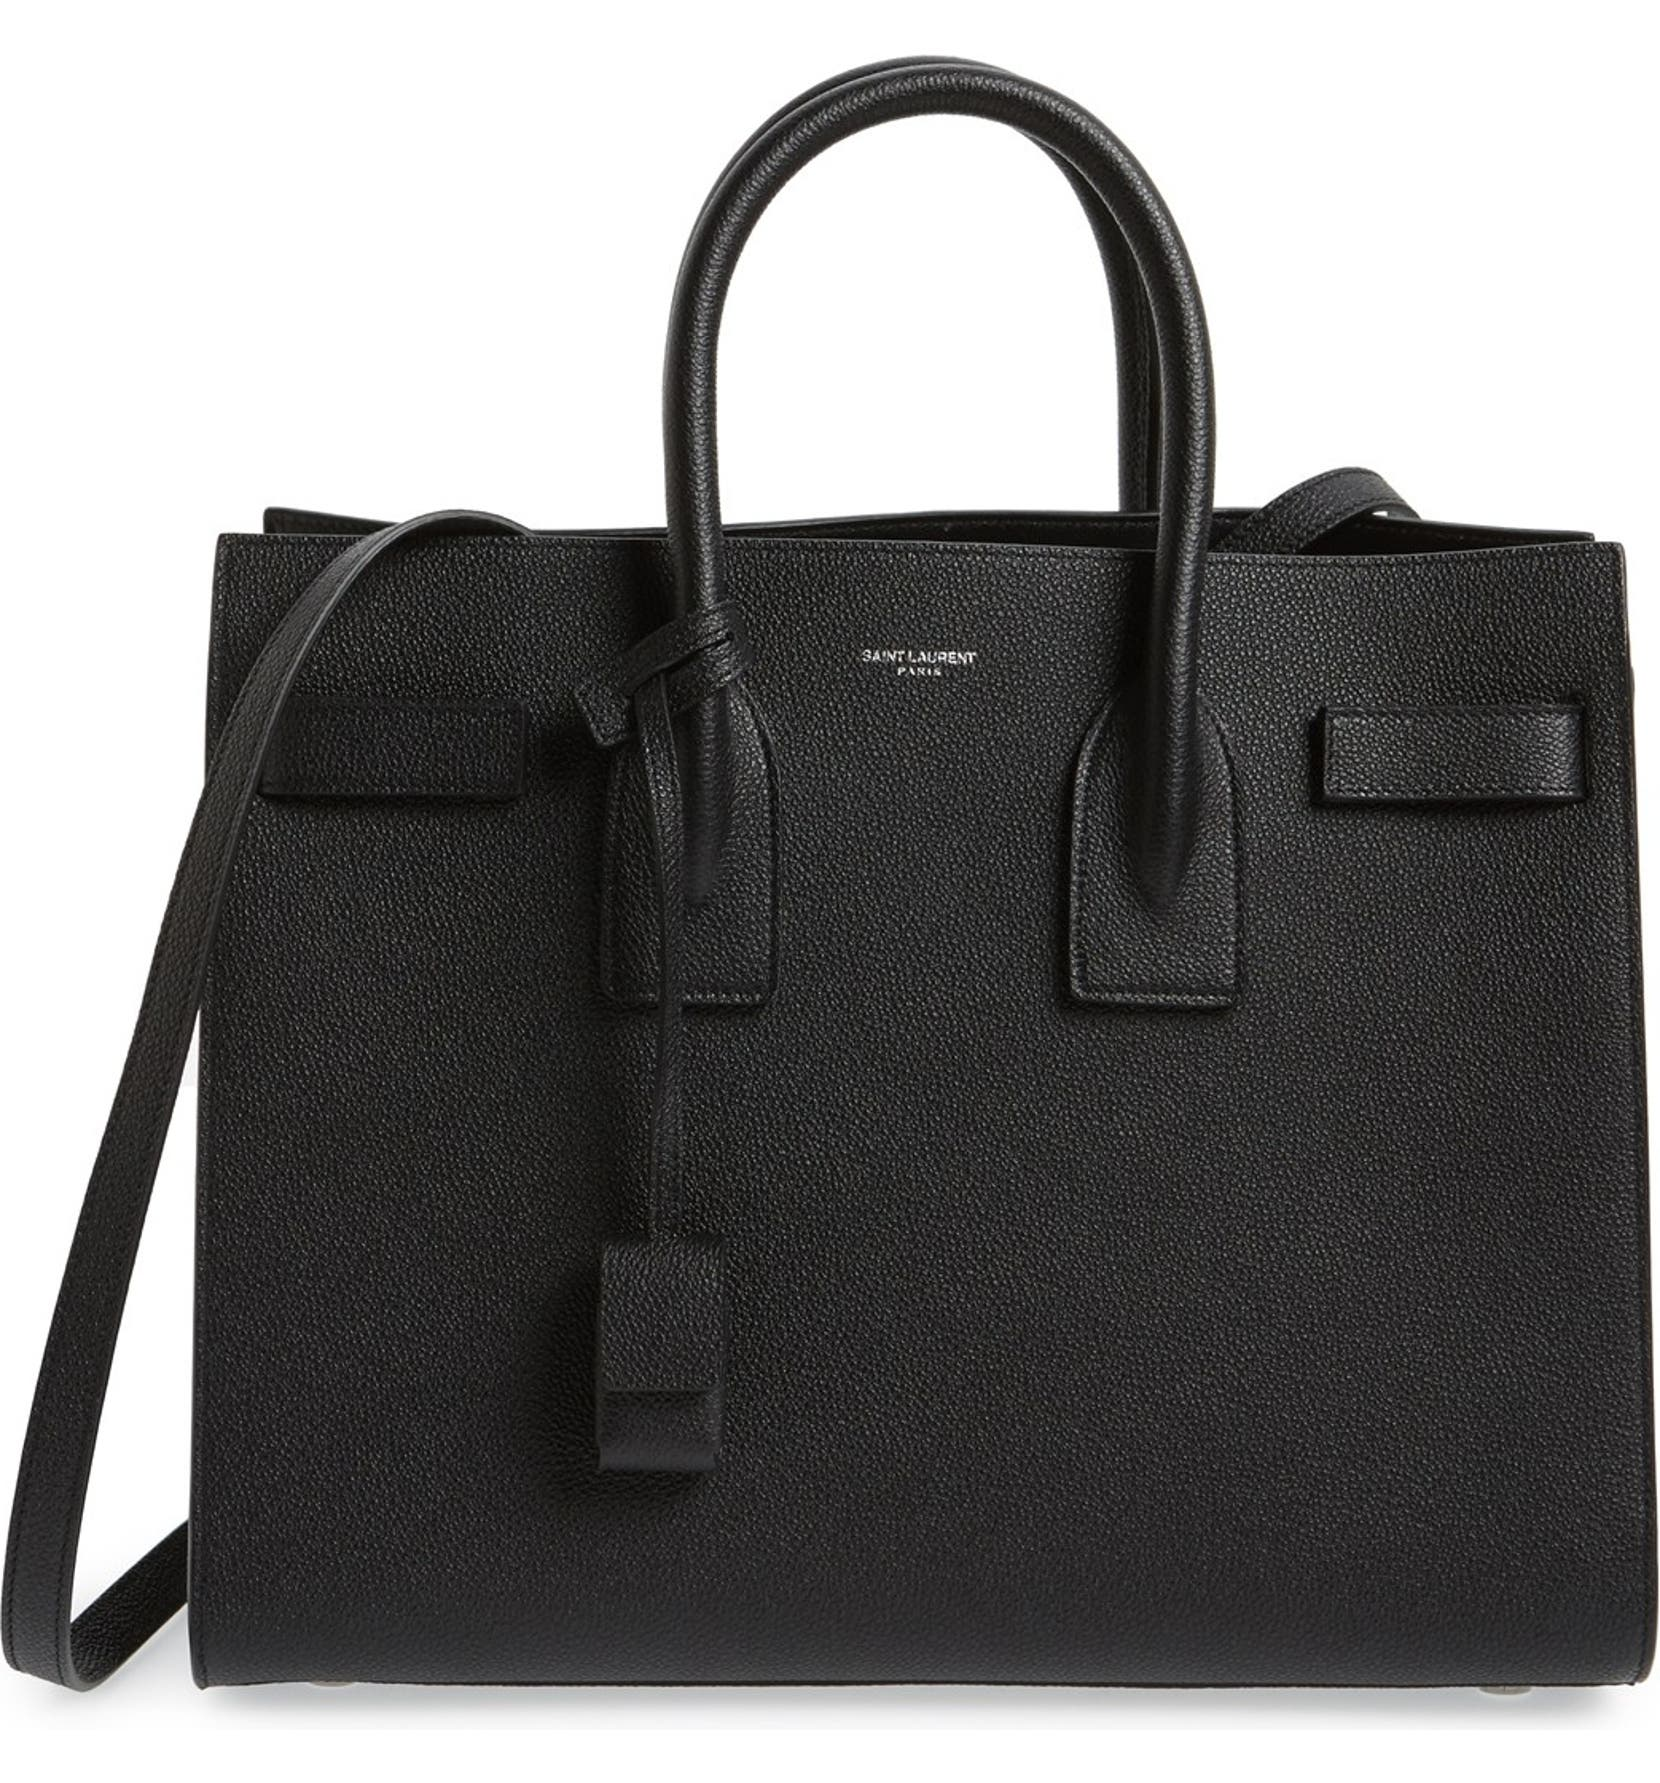 5e095a3403 'Small Sac de Jour' Leather Tote